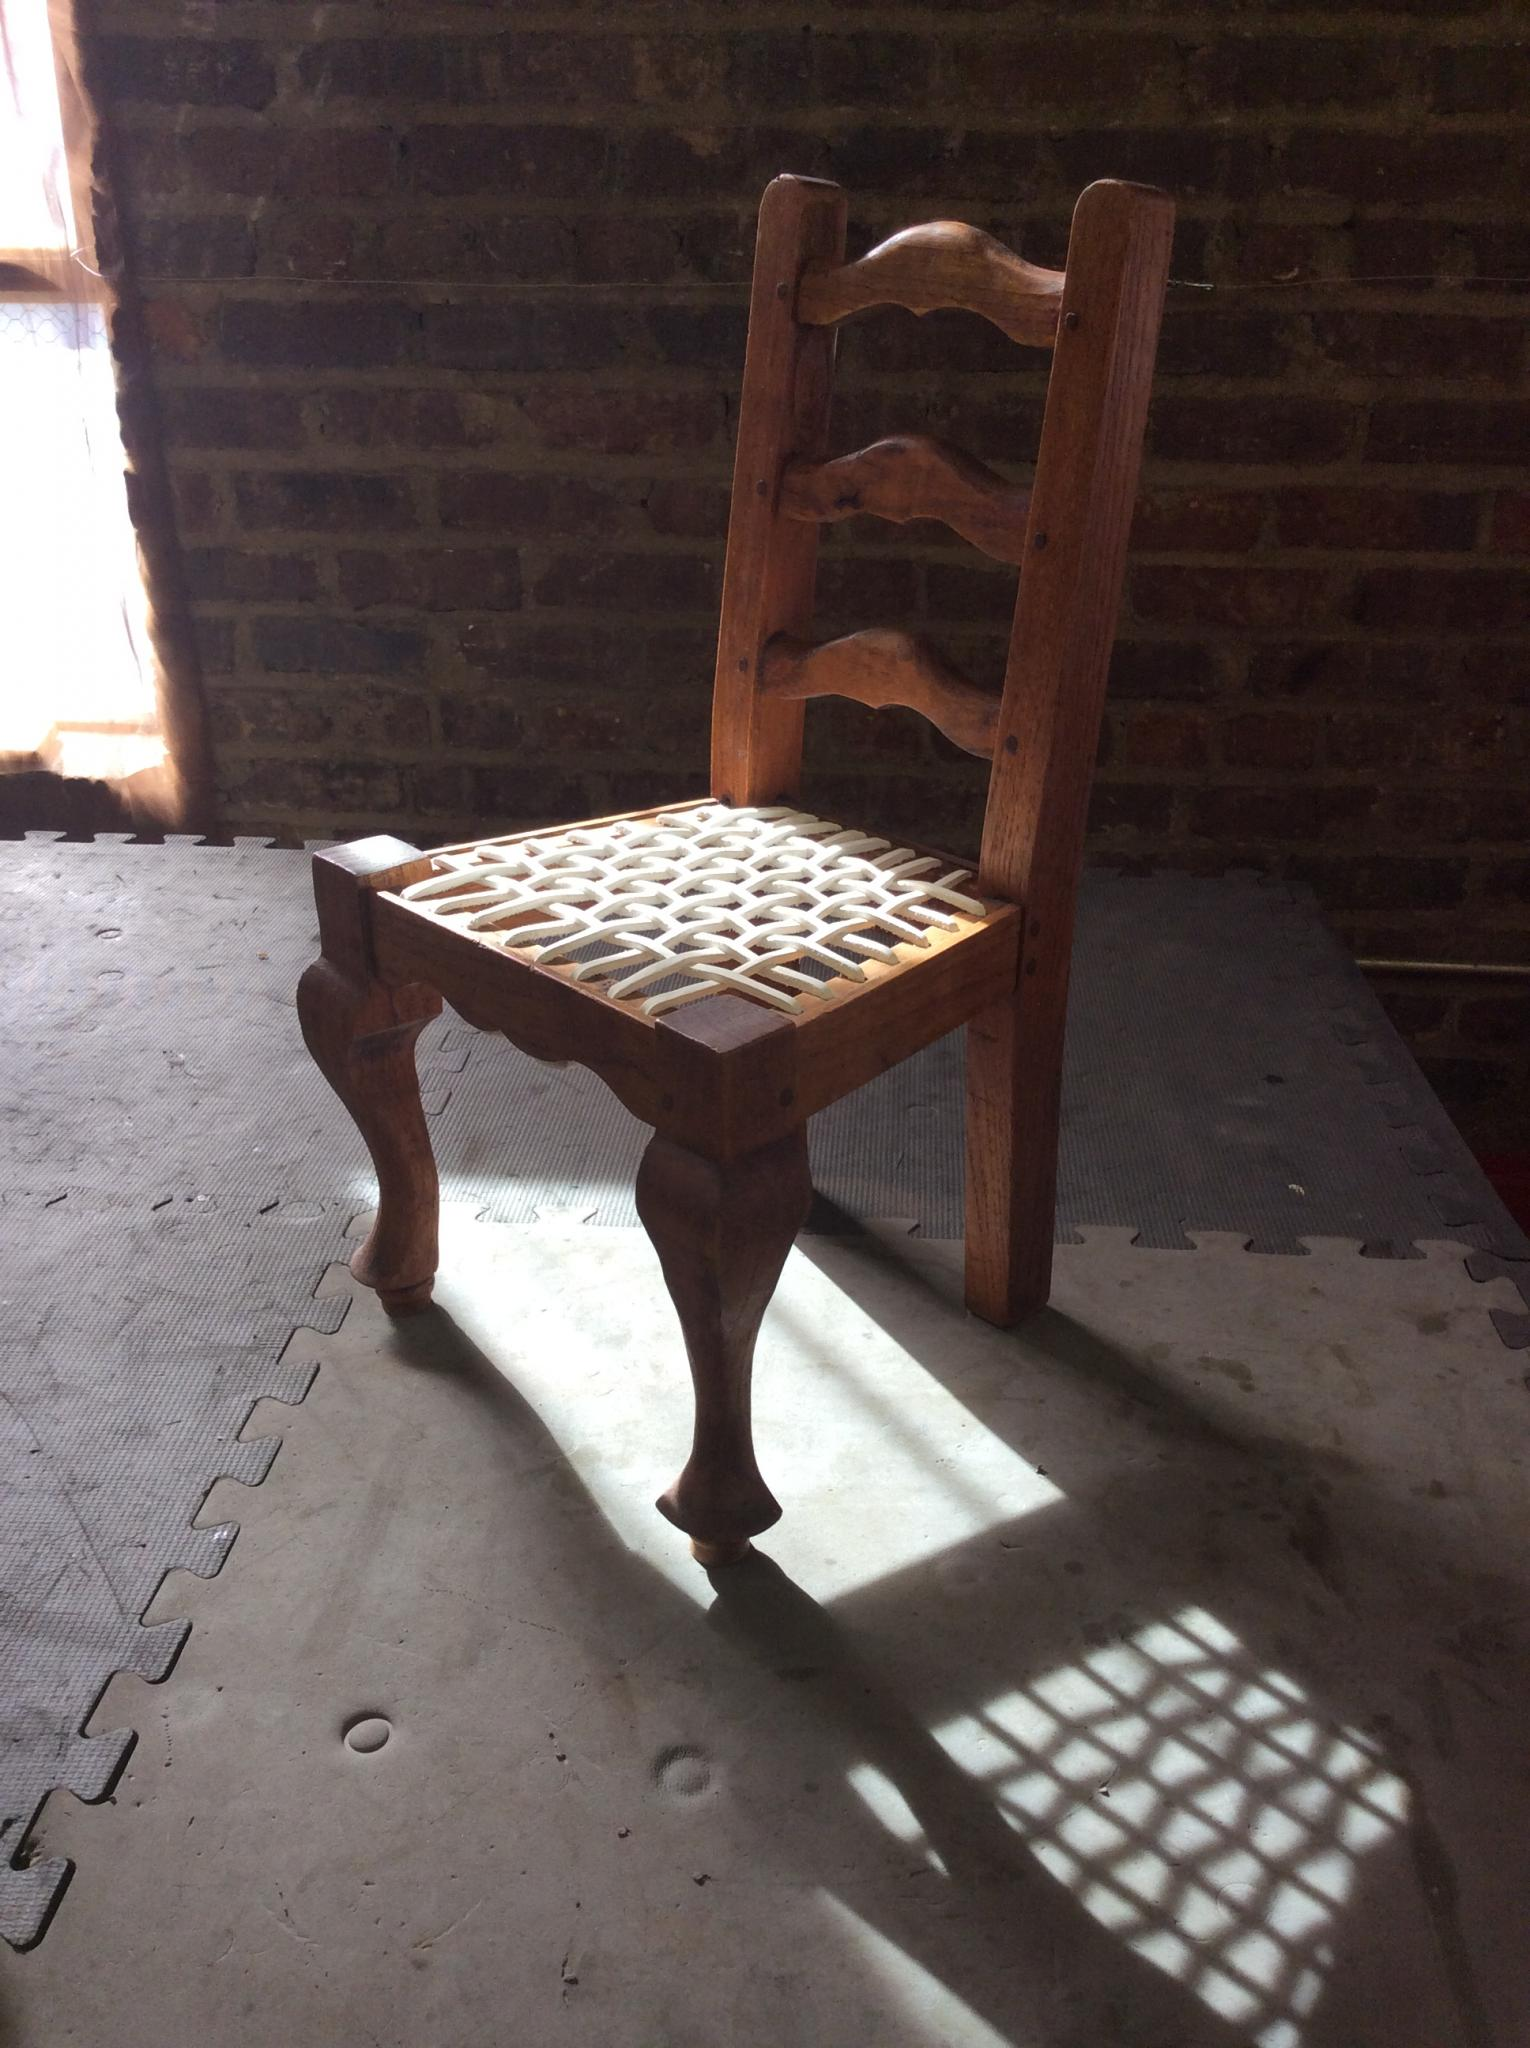 SRCCC-riempe-chair-shadow